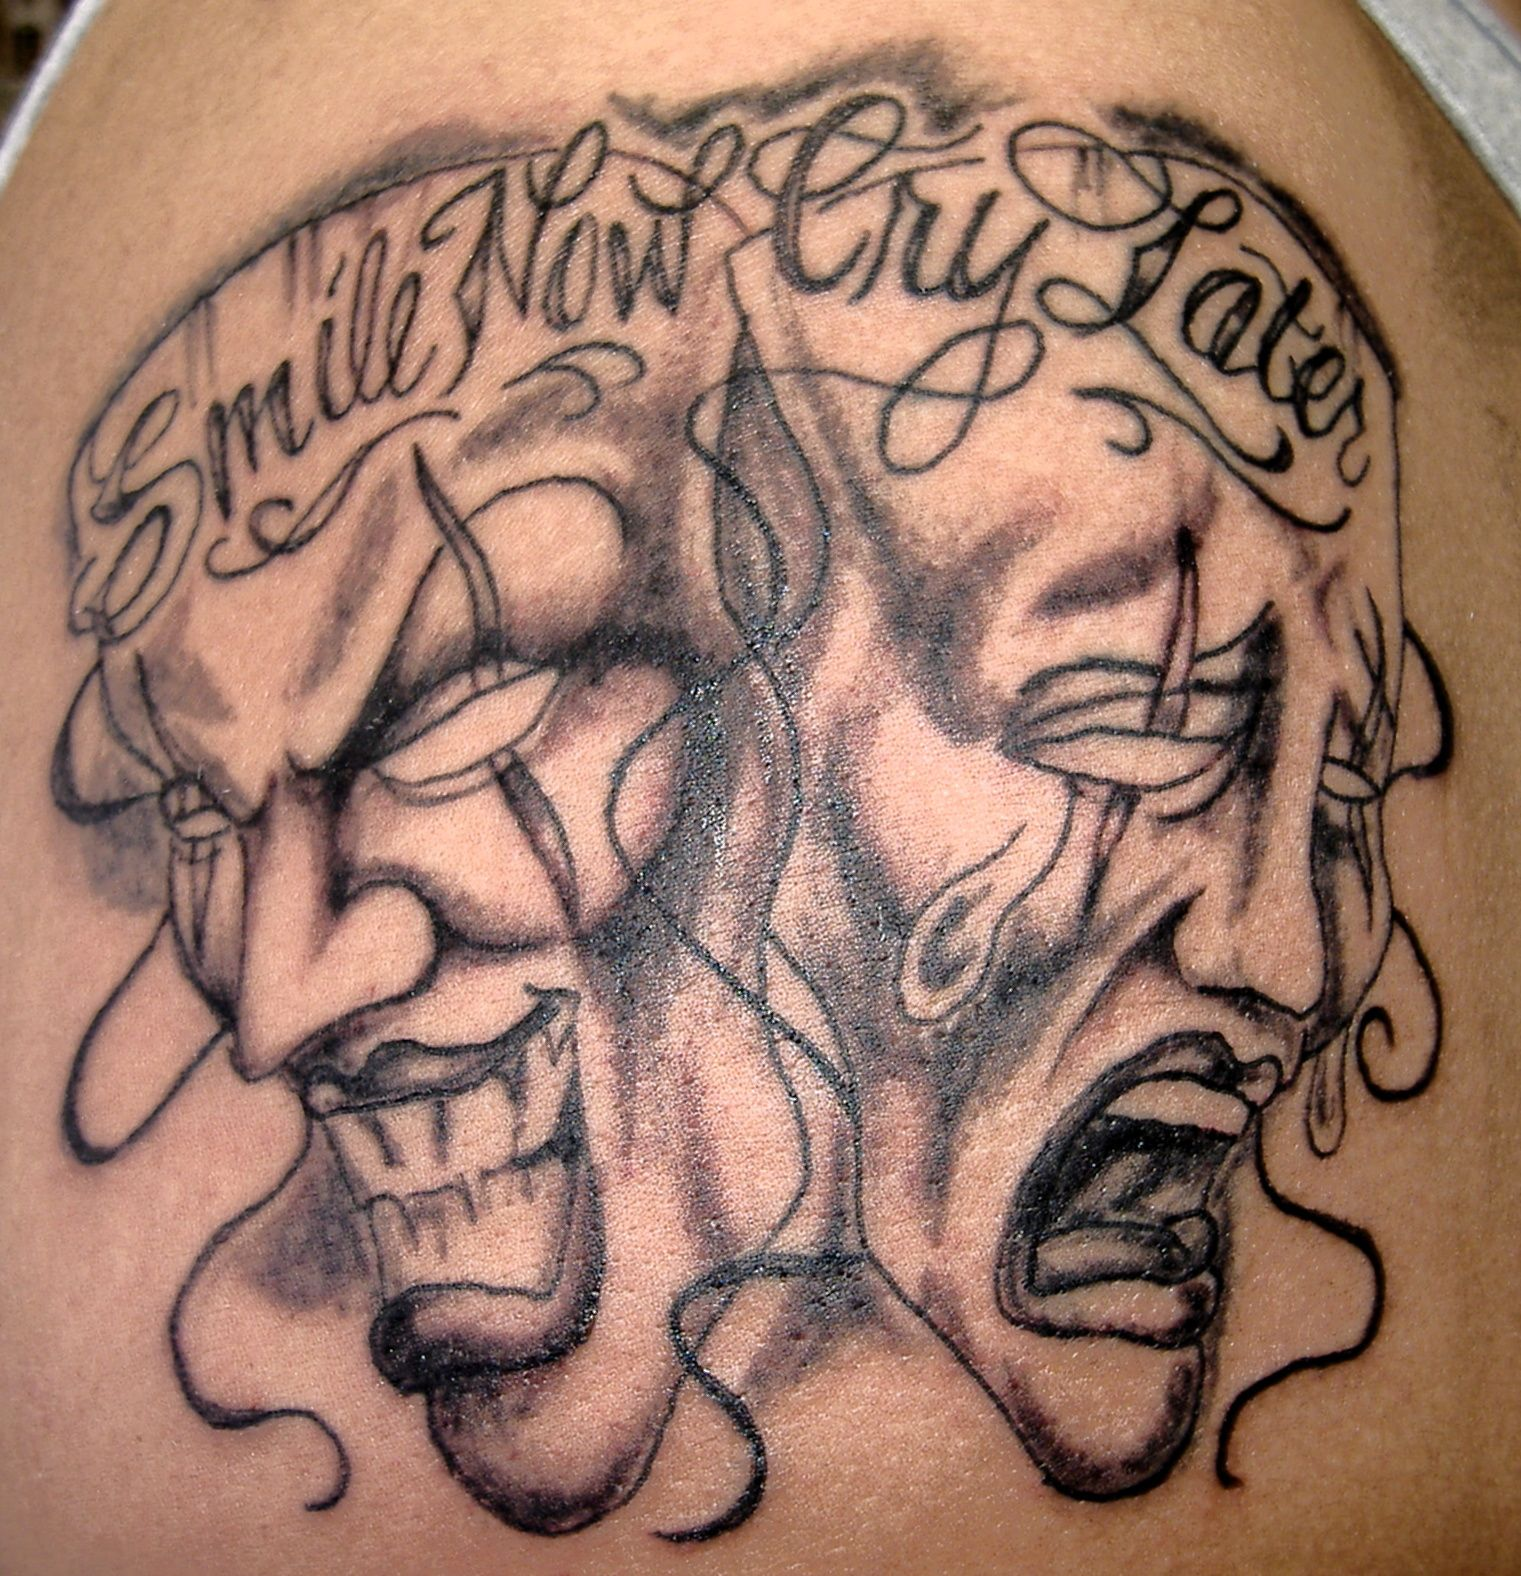 Simple Smile Now Cry Later Tattoo Designs The Last Of My Laugh Now